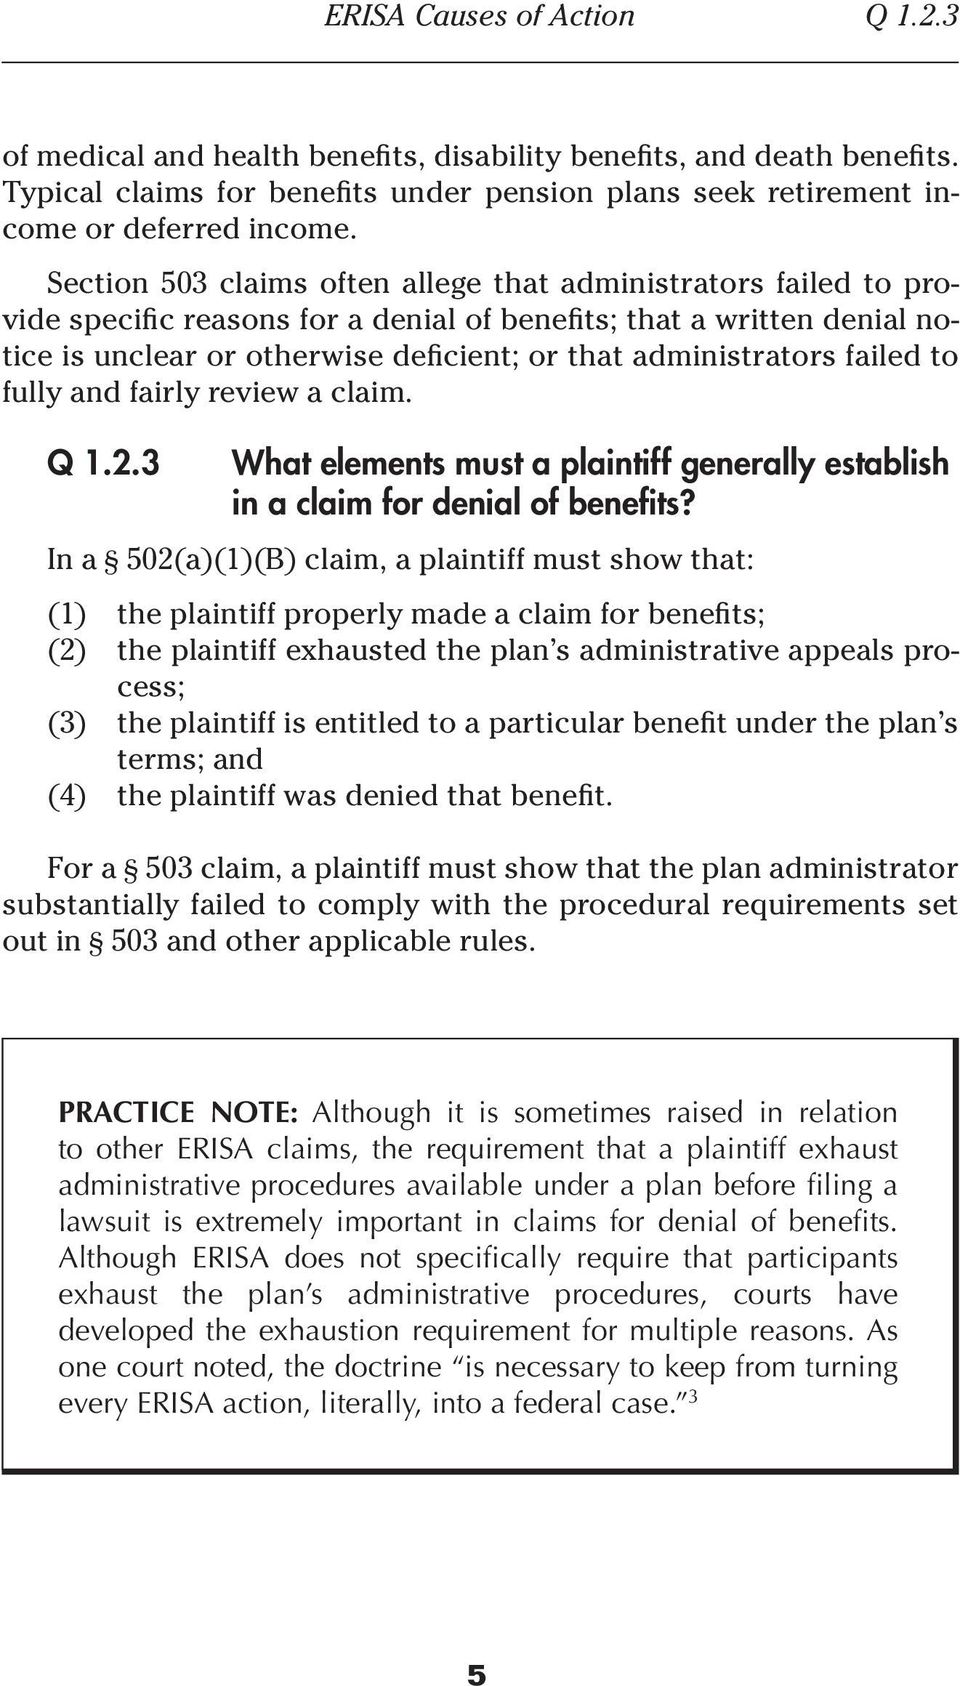 failed to fully and fairly review a claim. Q 1.2.3 What elements must a plaintiff generally establish in a claim for denial of benefits?